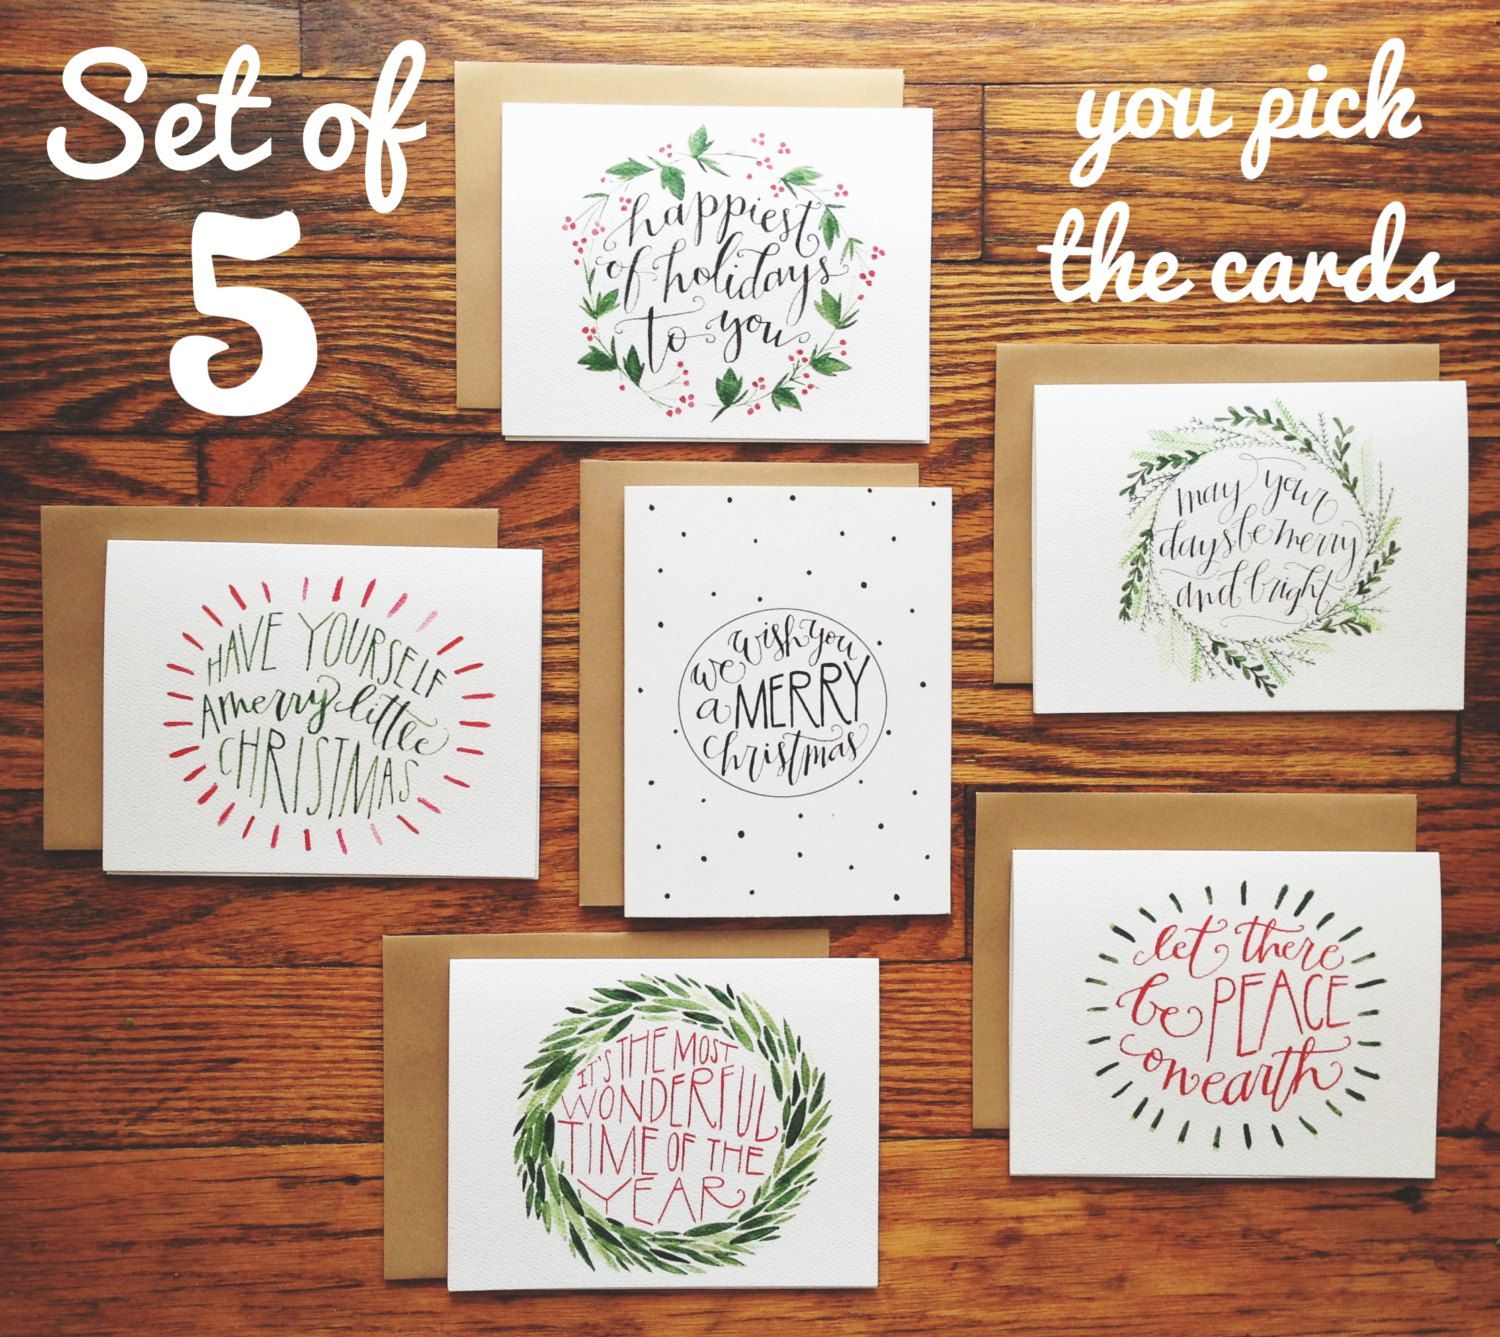 Christmas Cards HandLettered and Illustrated Set of 5 by joliemade